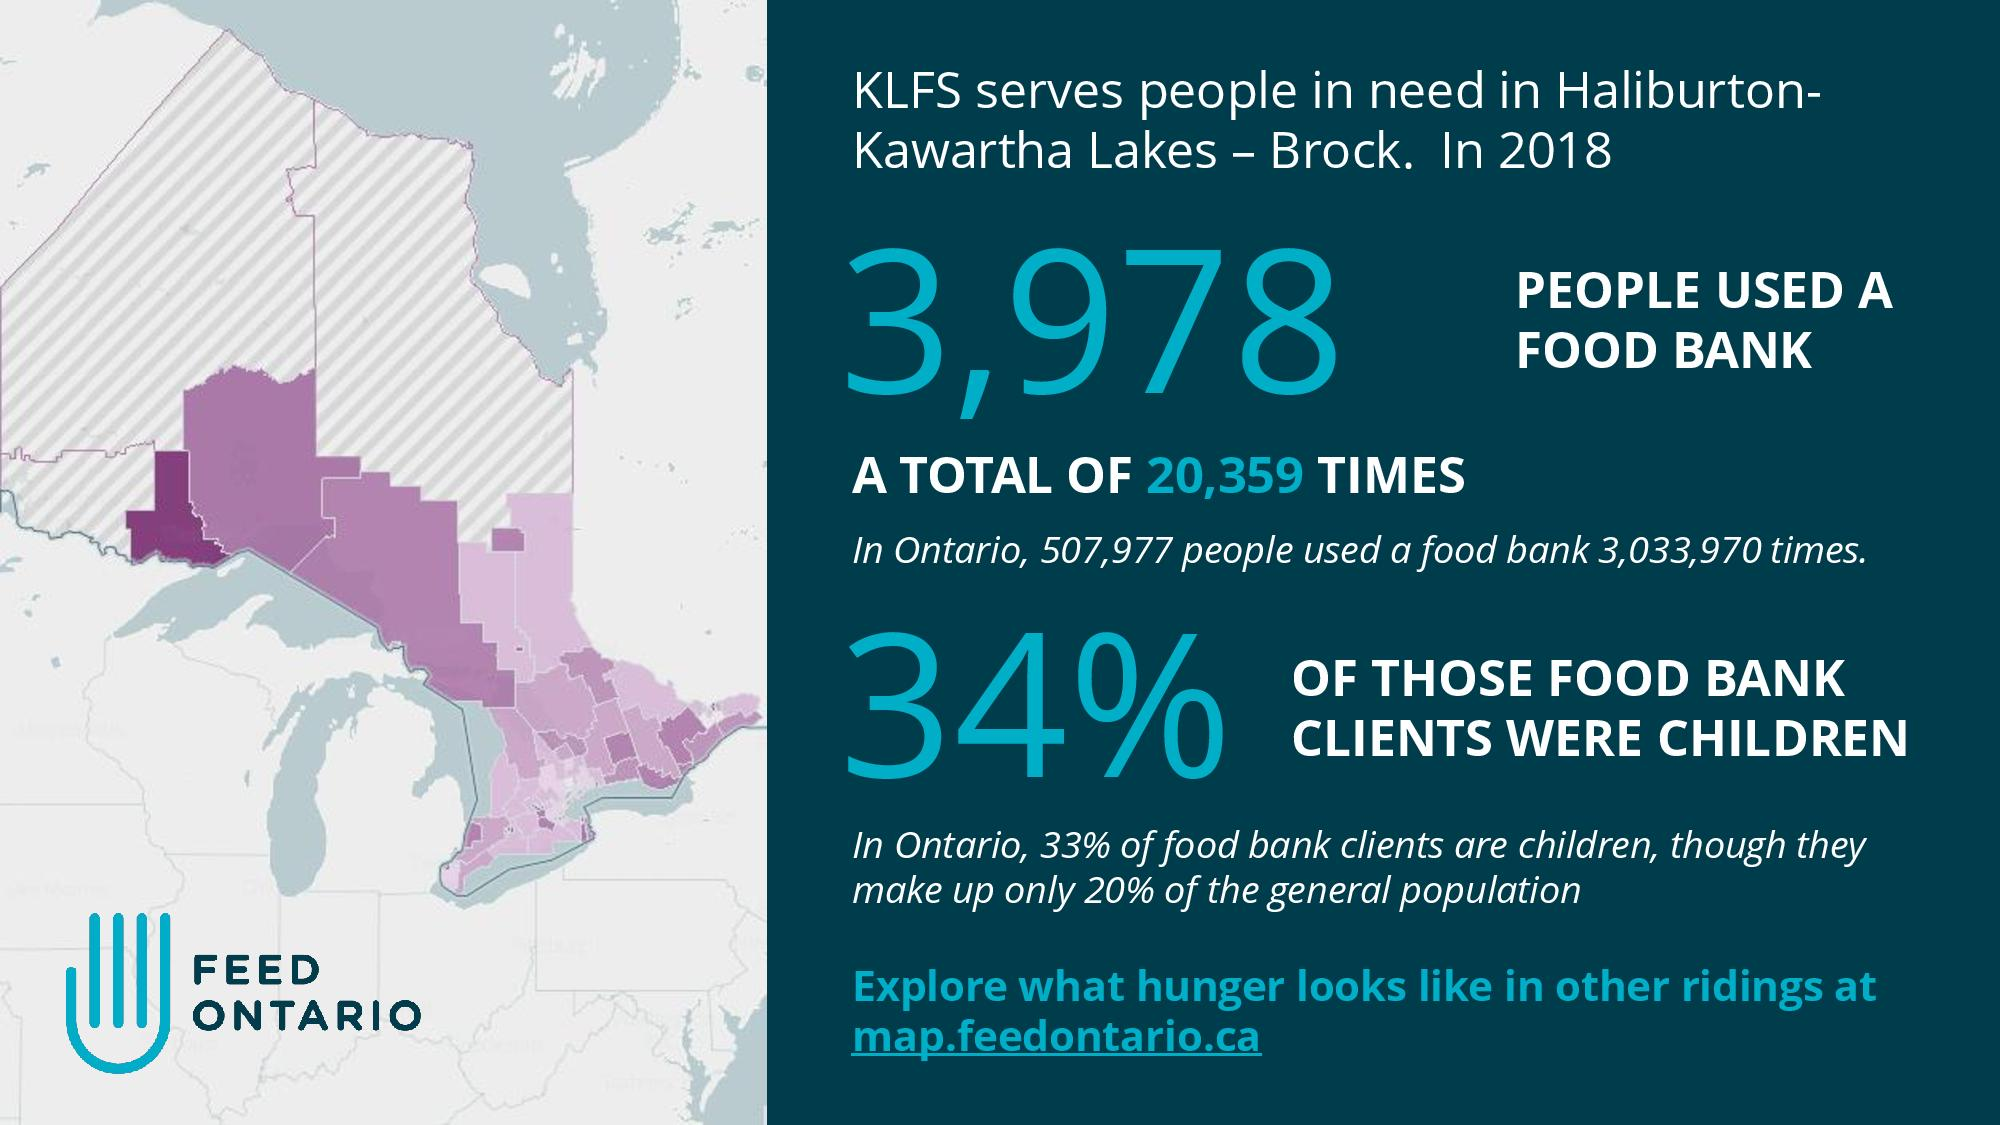 New study shows Kawartha Lakes just slightly above average in food bank use